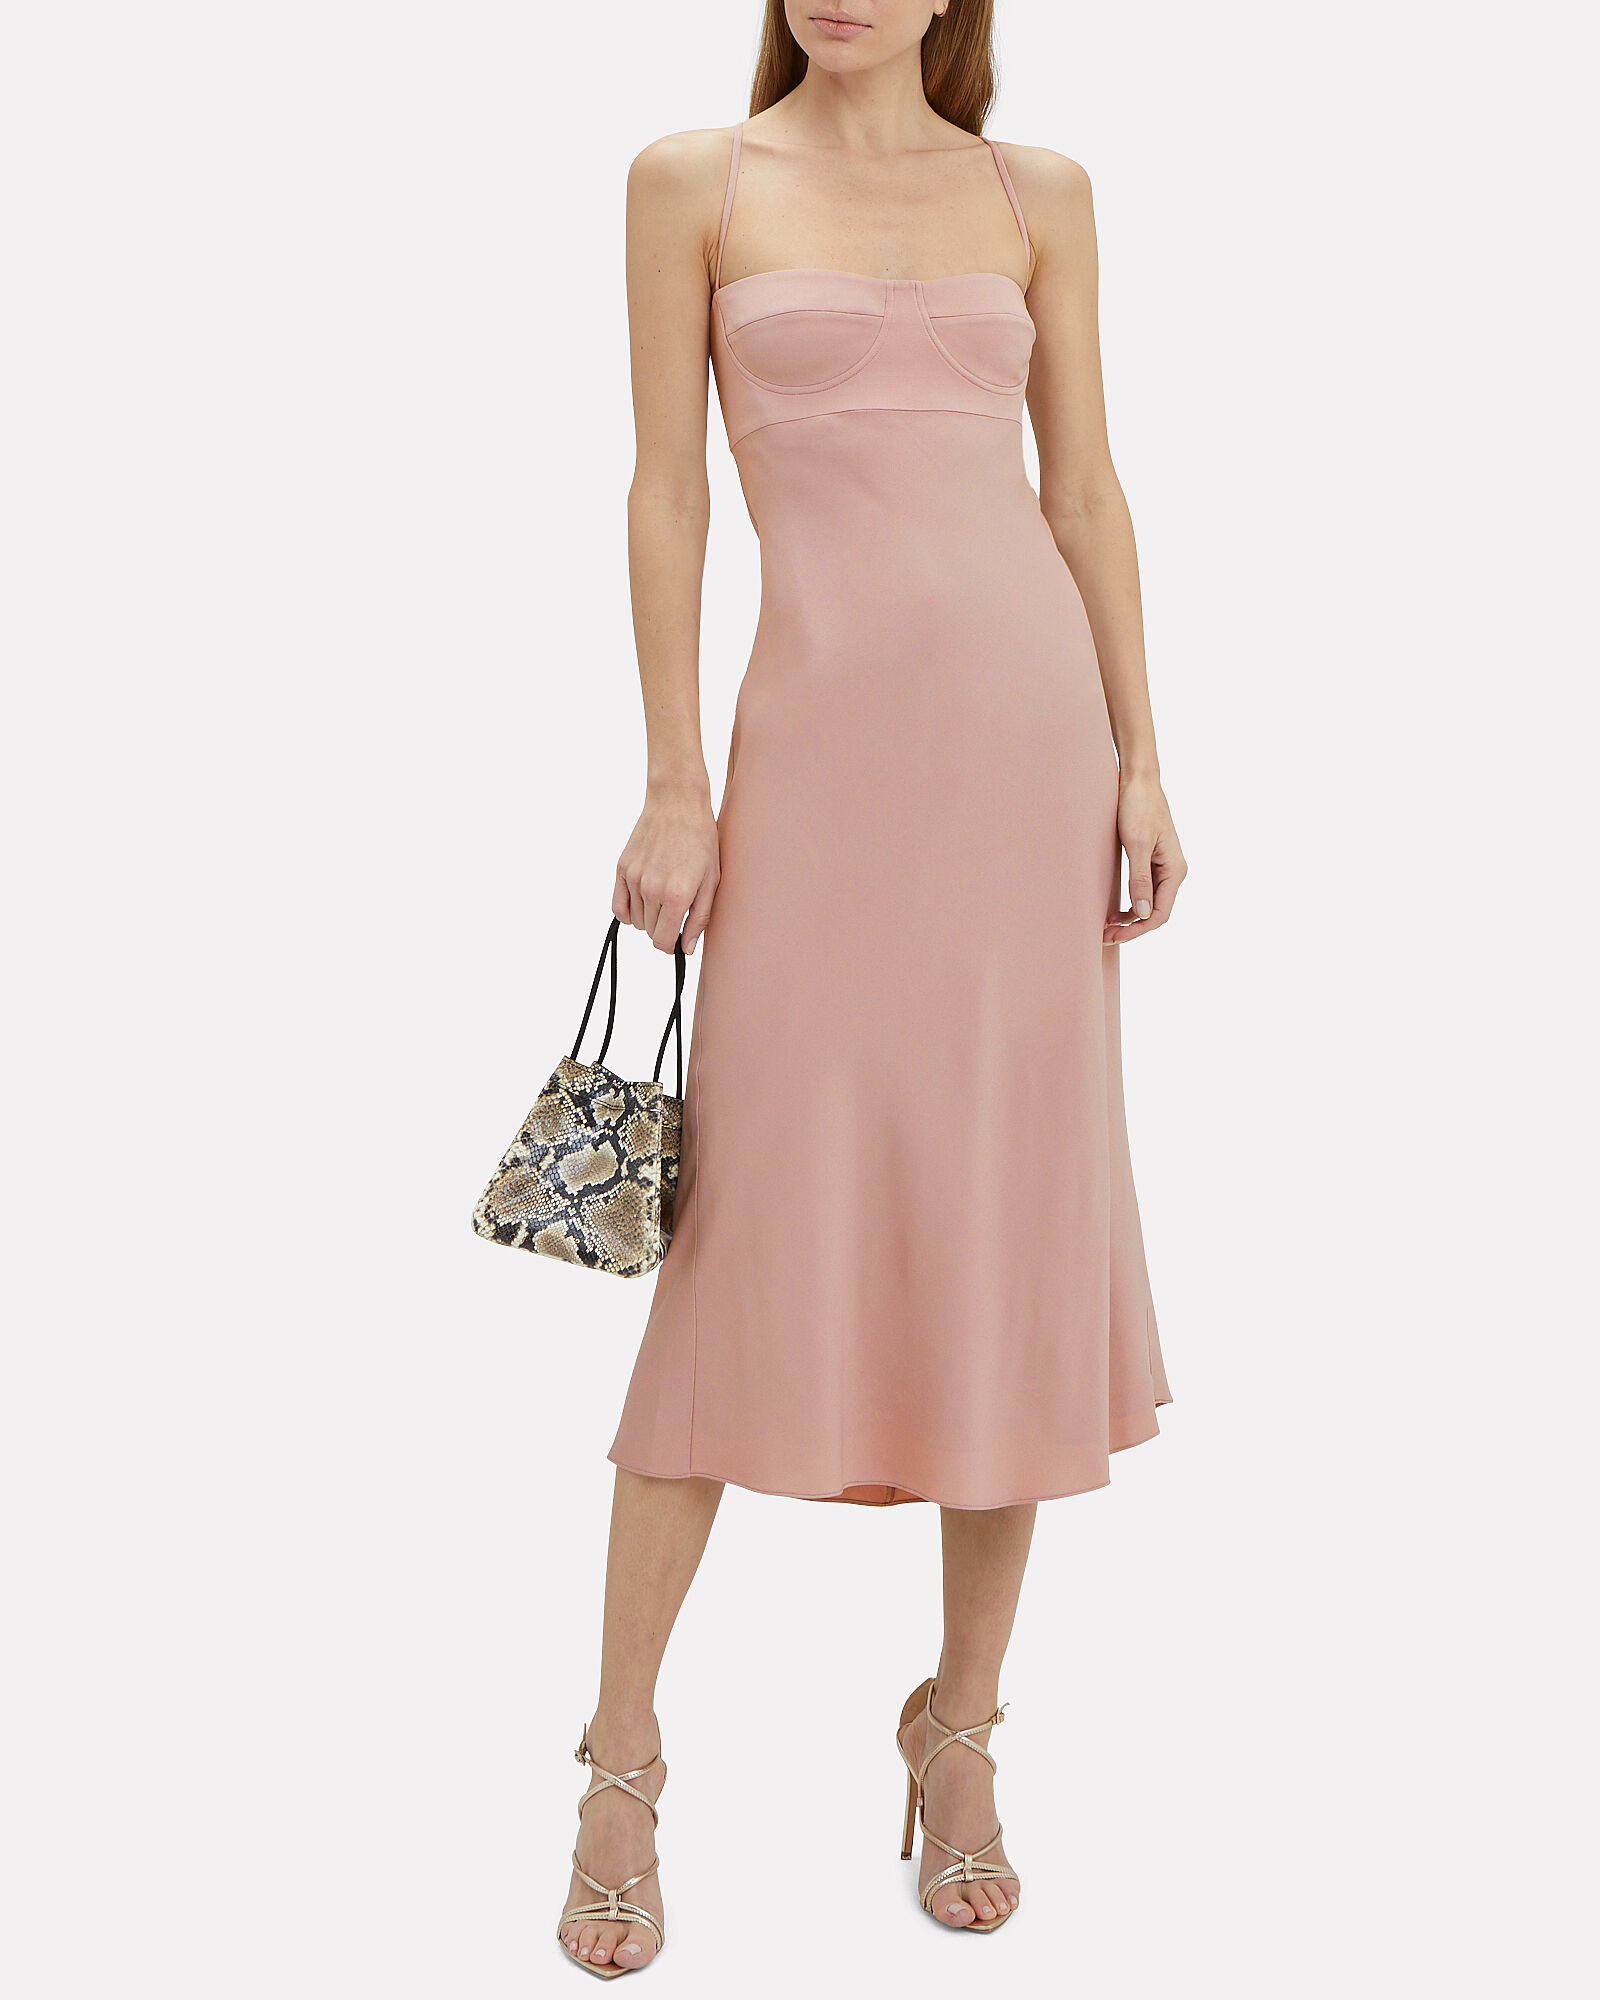 Crepe Suiting Bustier Dress, BLUSH, hi-res